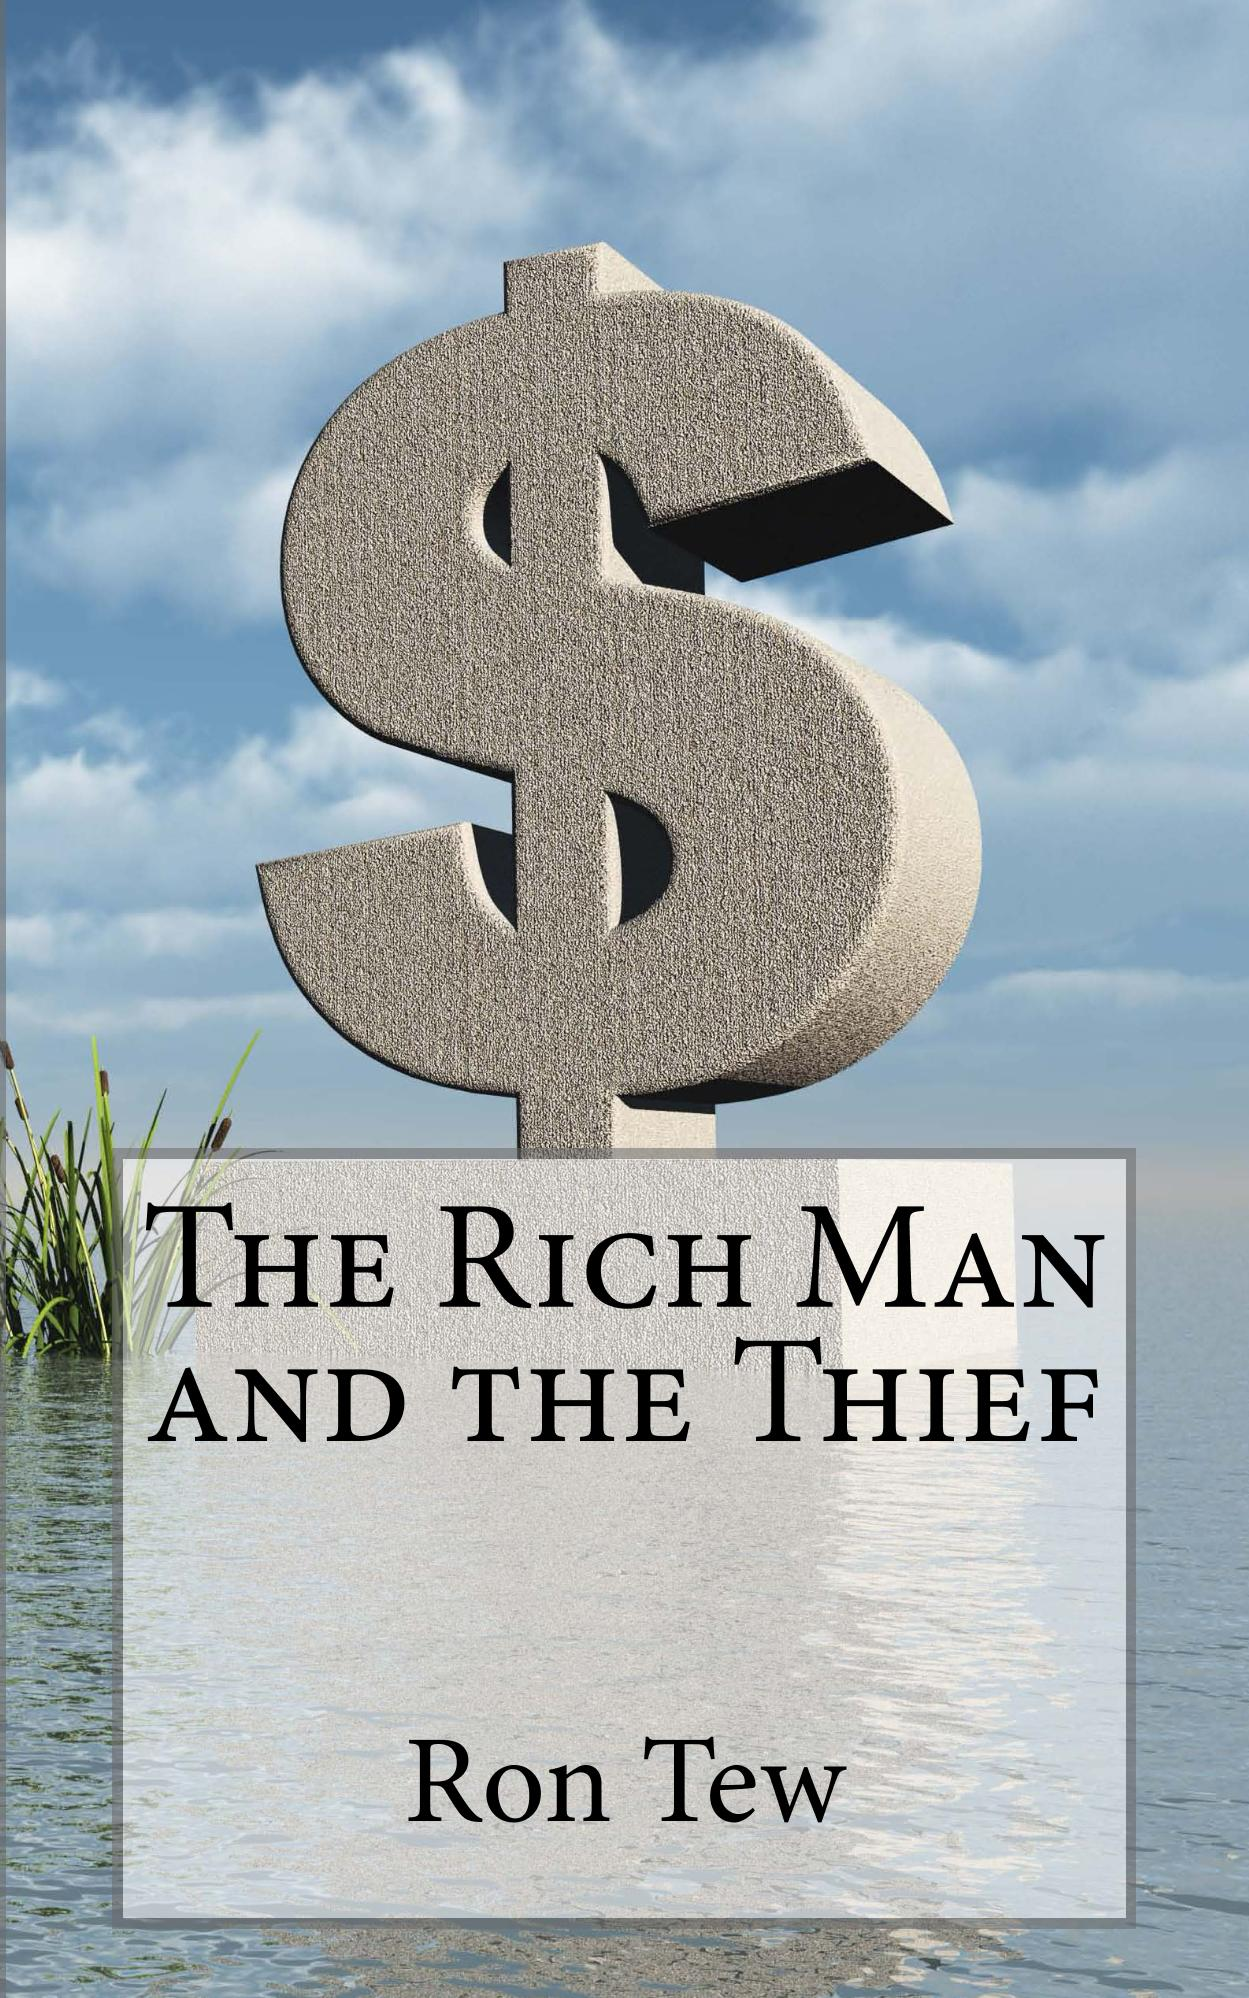 The Rich Man and The Thief